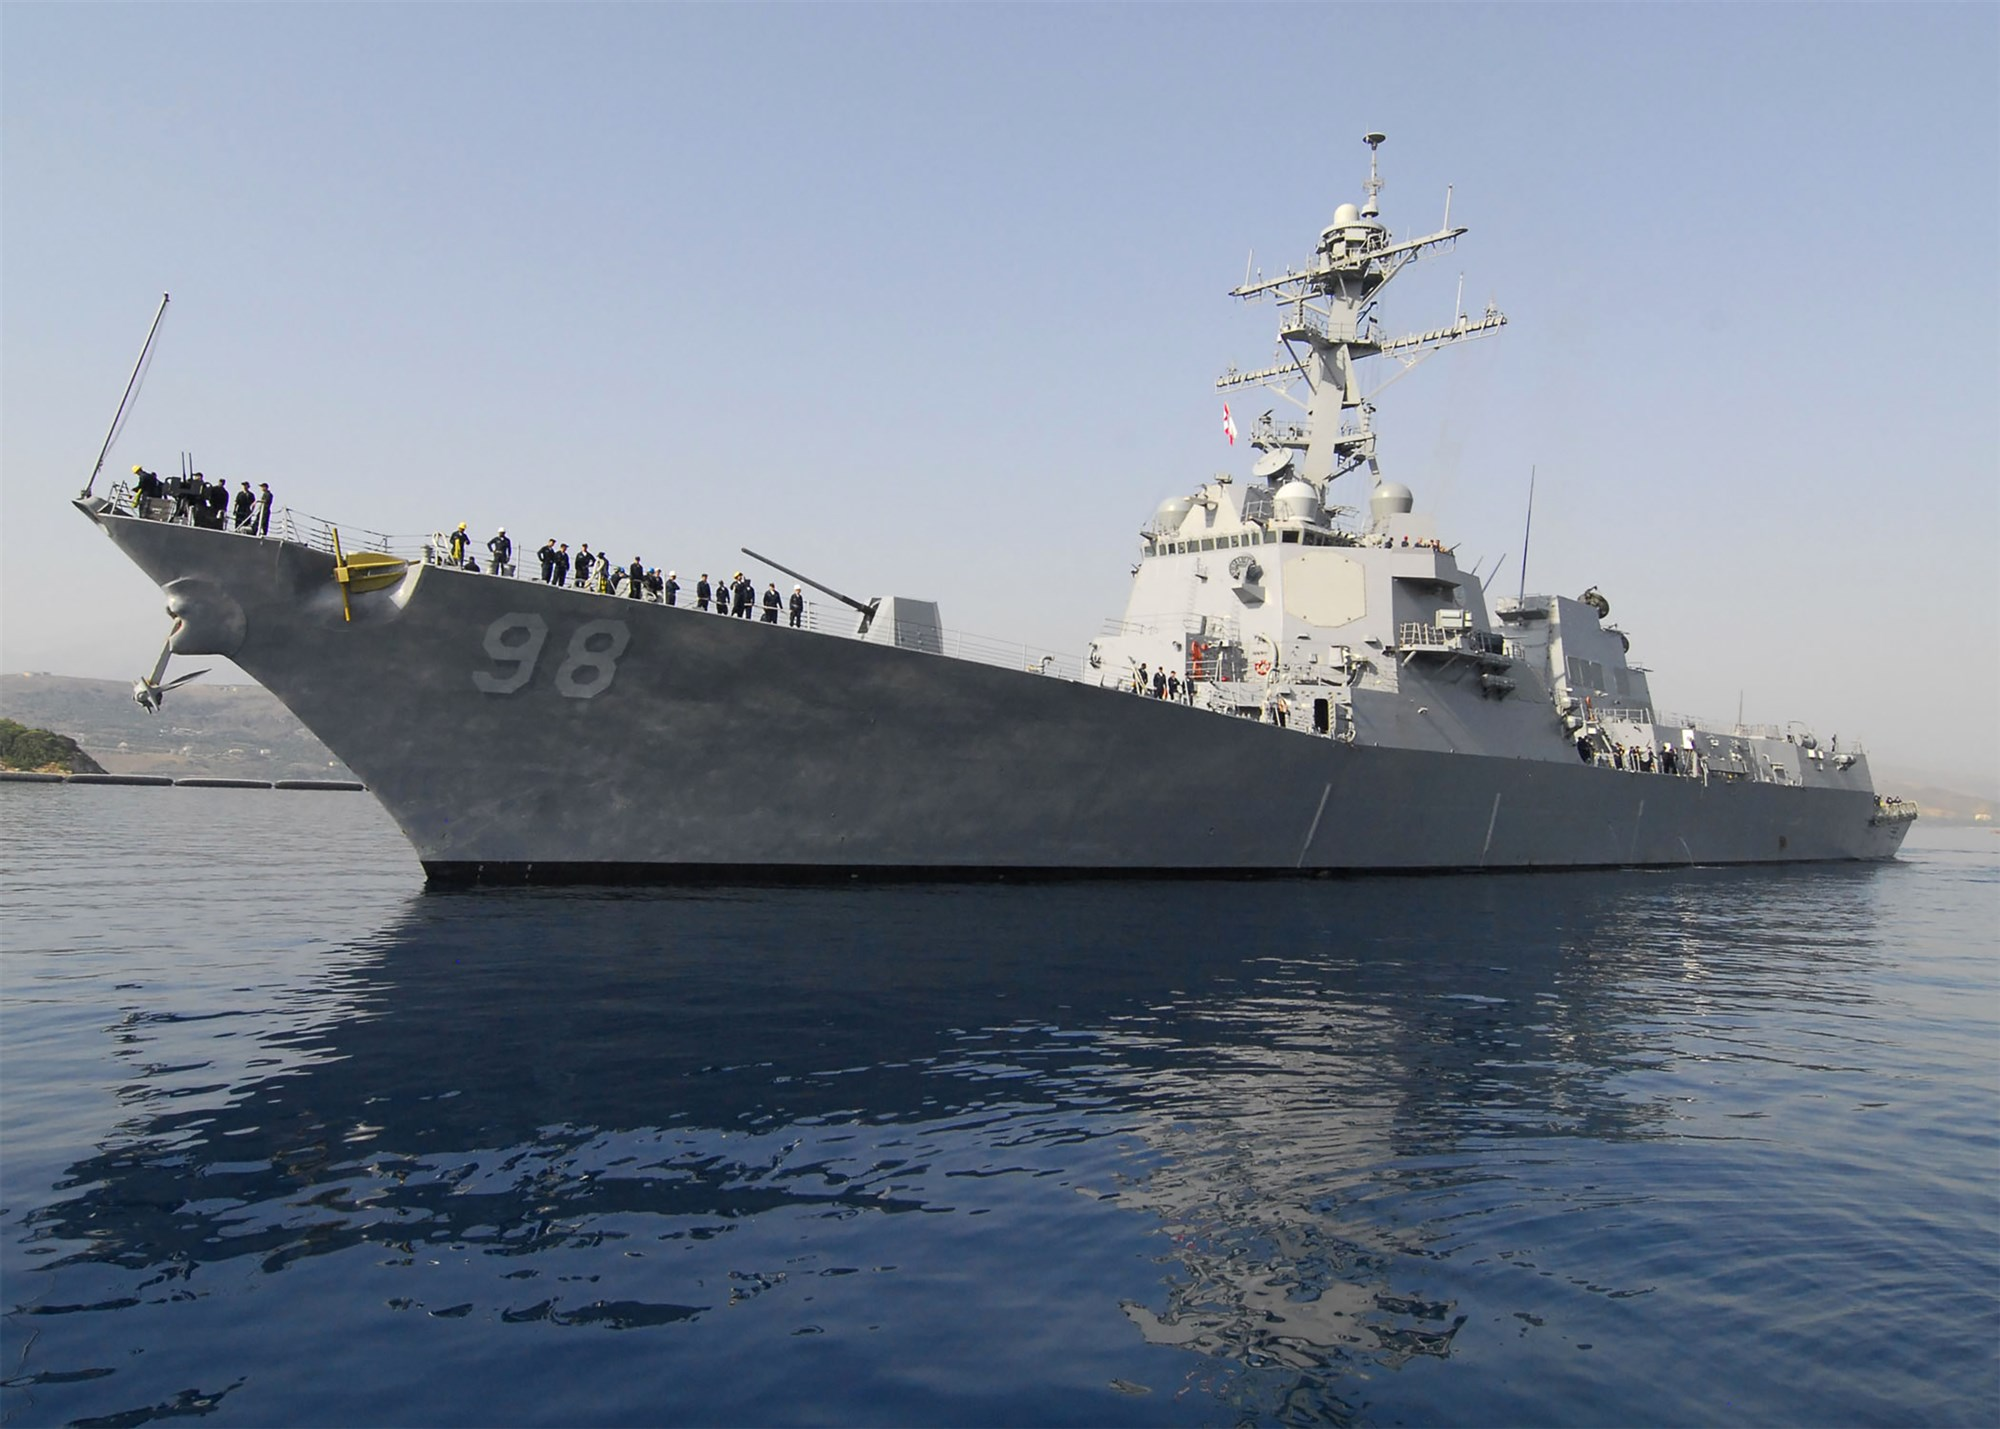 Arleigh Burke-class guided-missile destroyer Forrest Sherman (DDG 98)